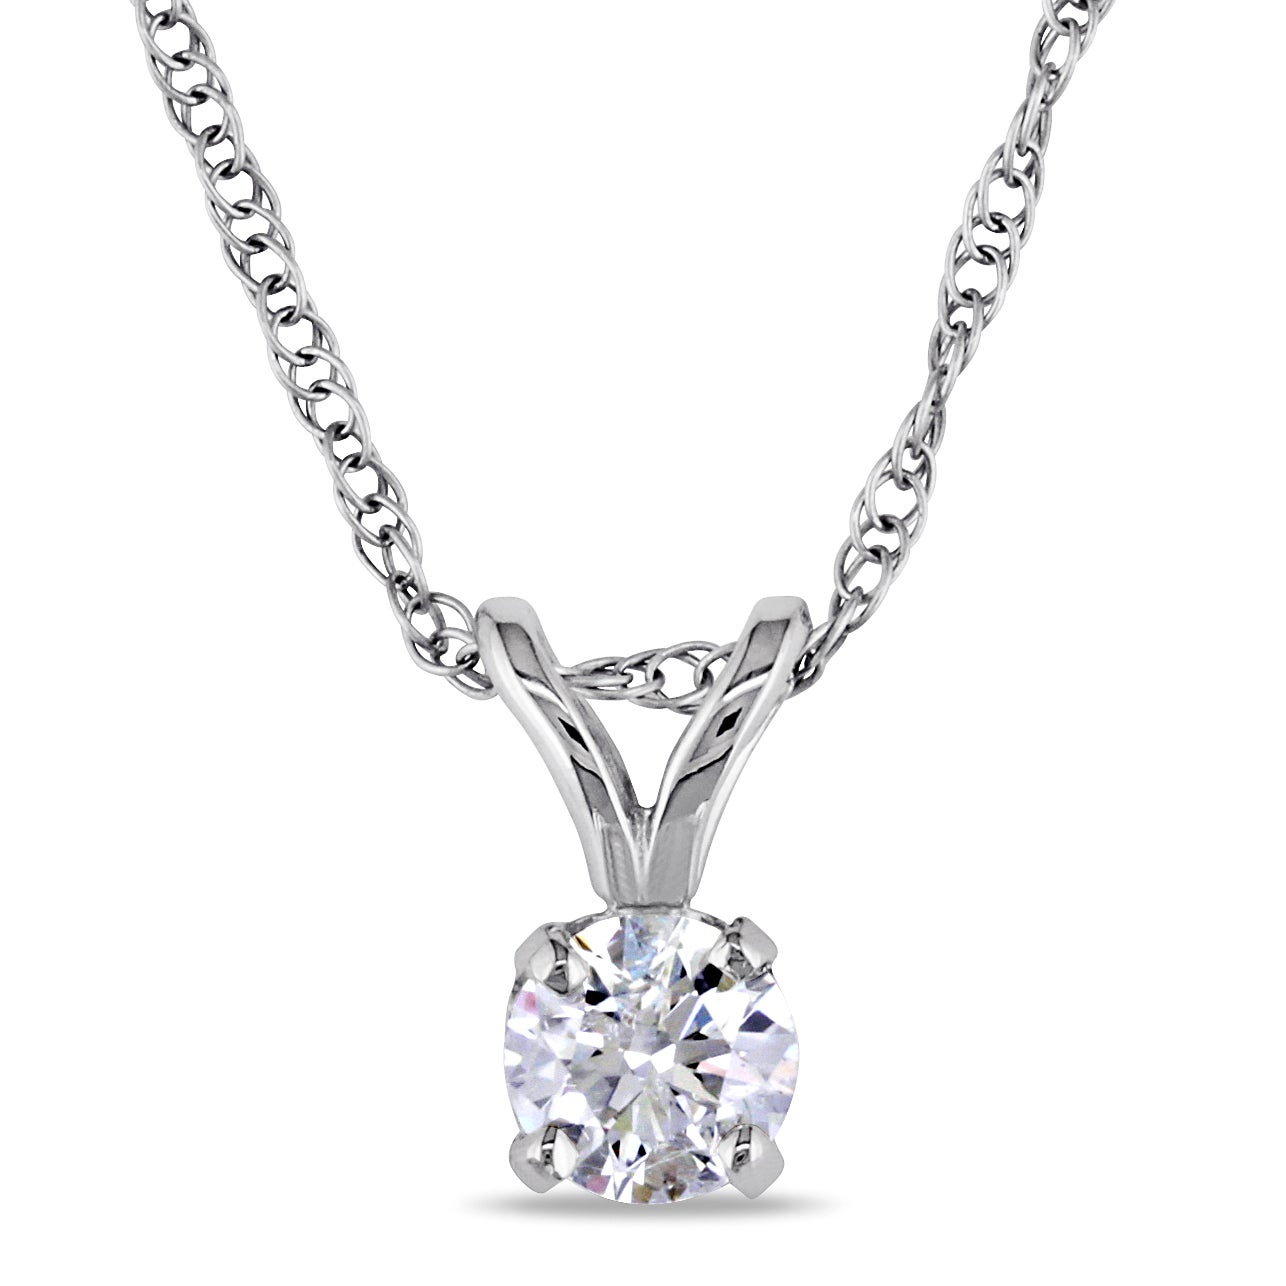 Miadora 14k White Gold 1/5ct TDW Certified Diamond Necklace (G-H, I1-I2) (IGL)